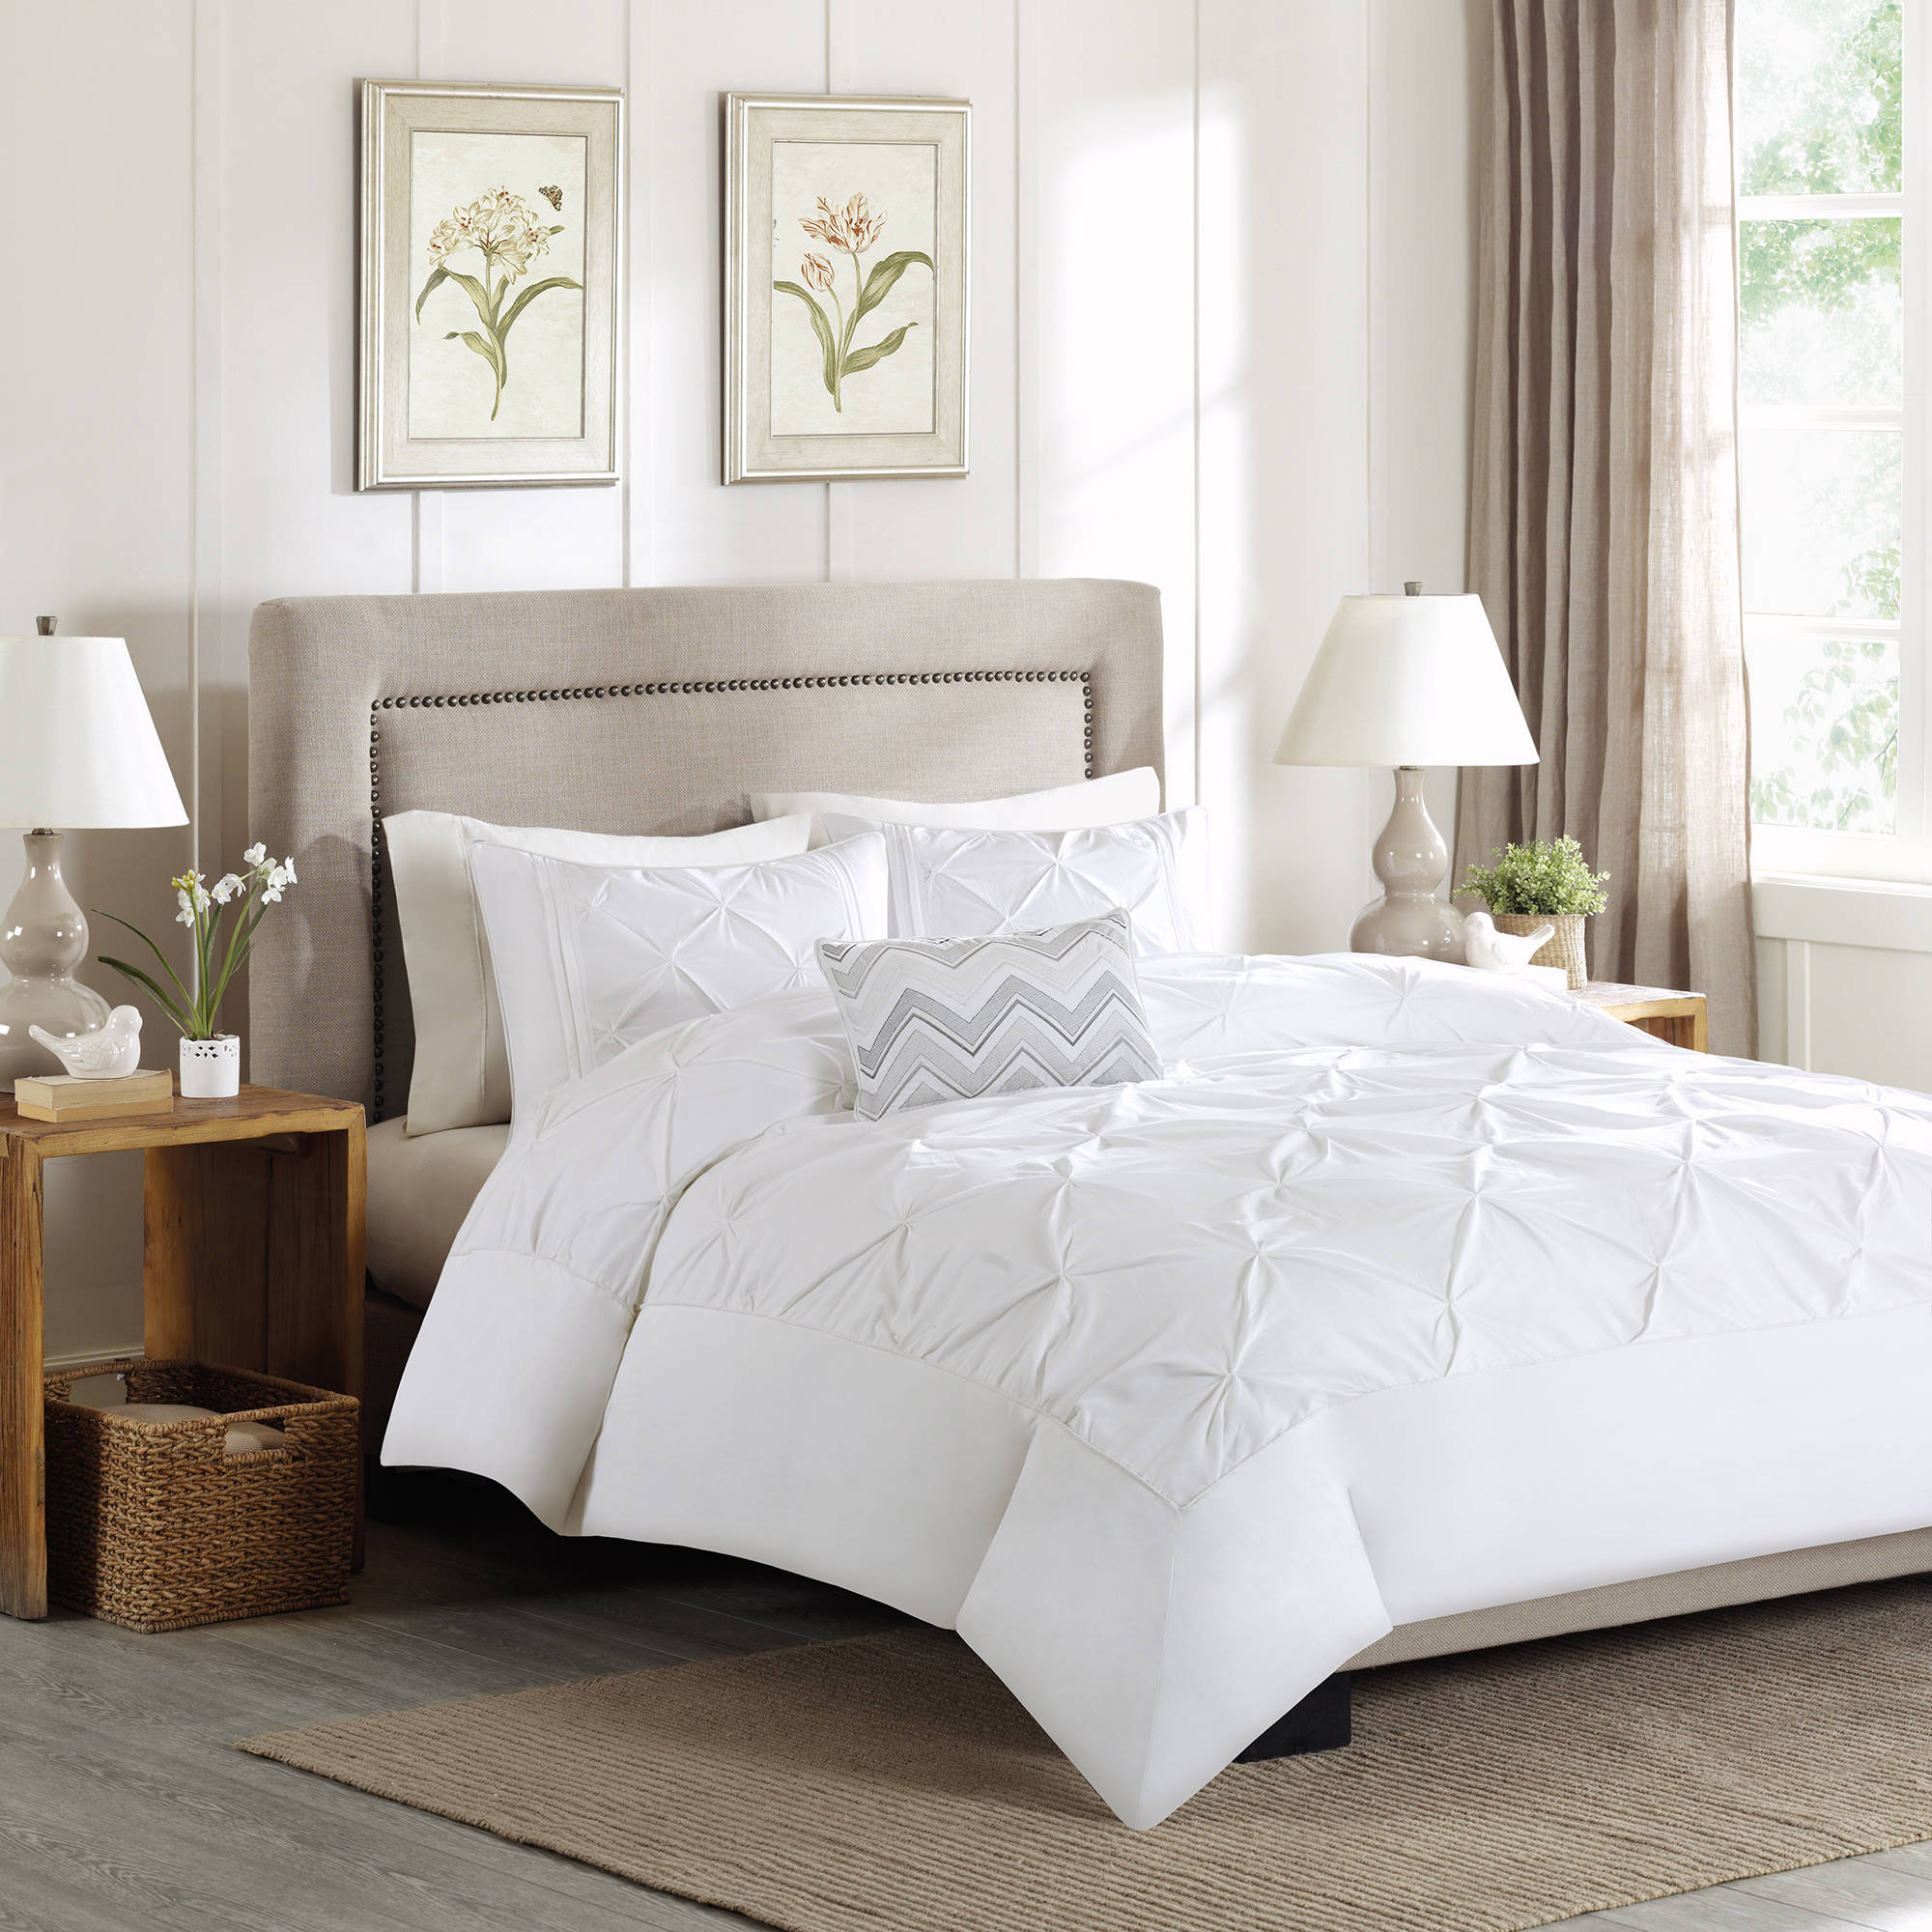 white new sets web lincoln full cover duvet maison seersucker blanche